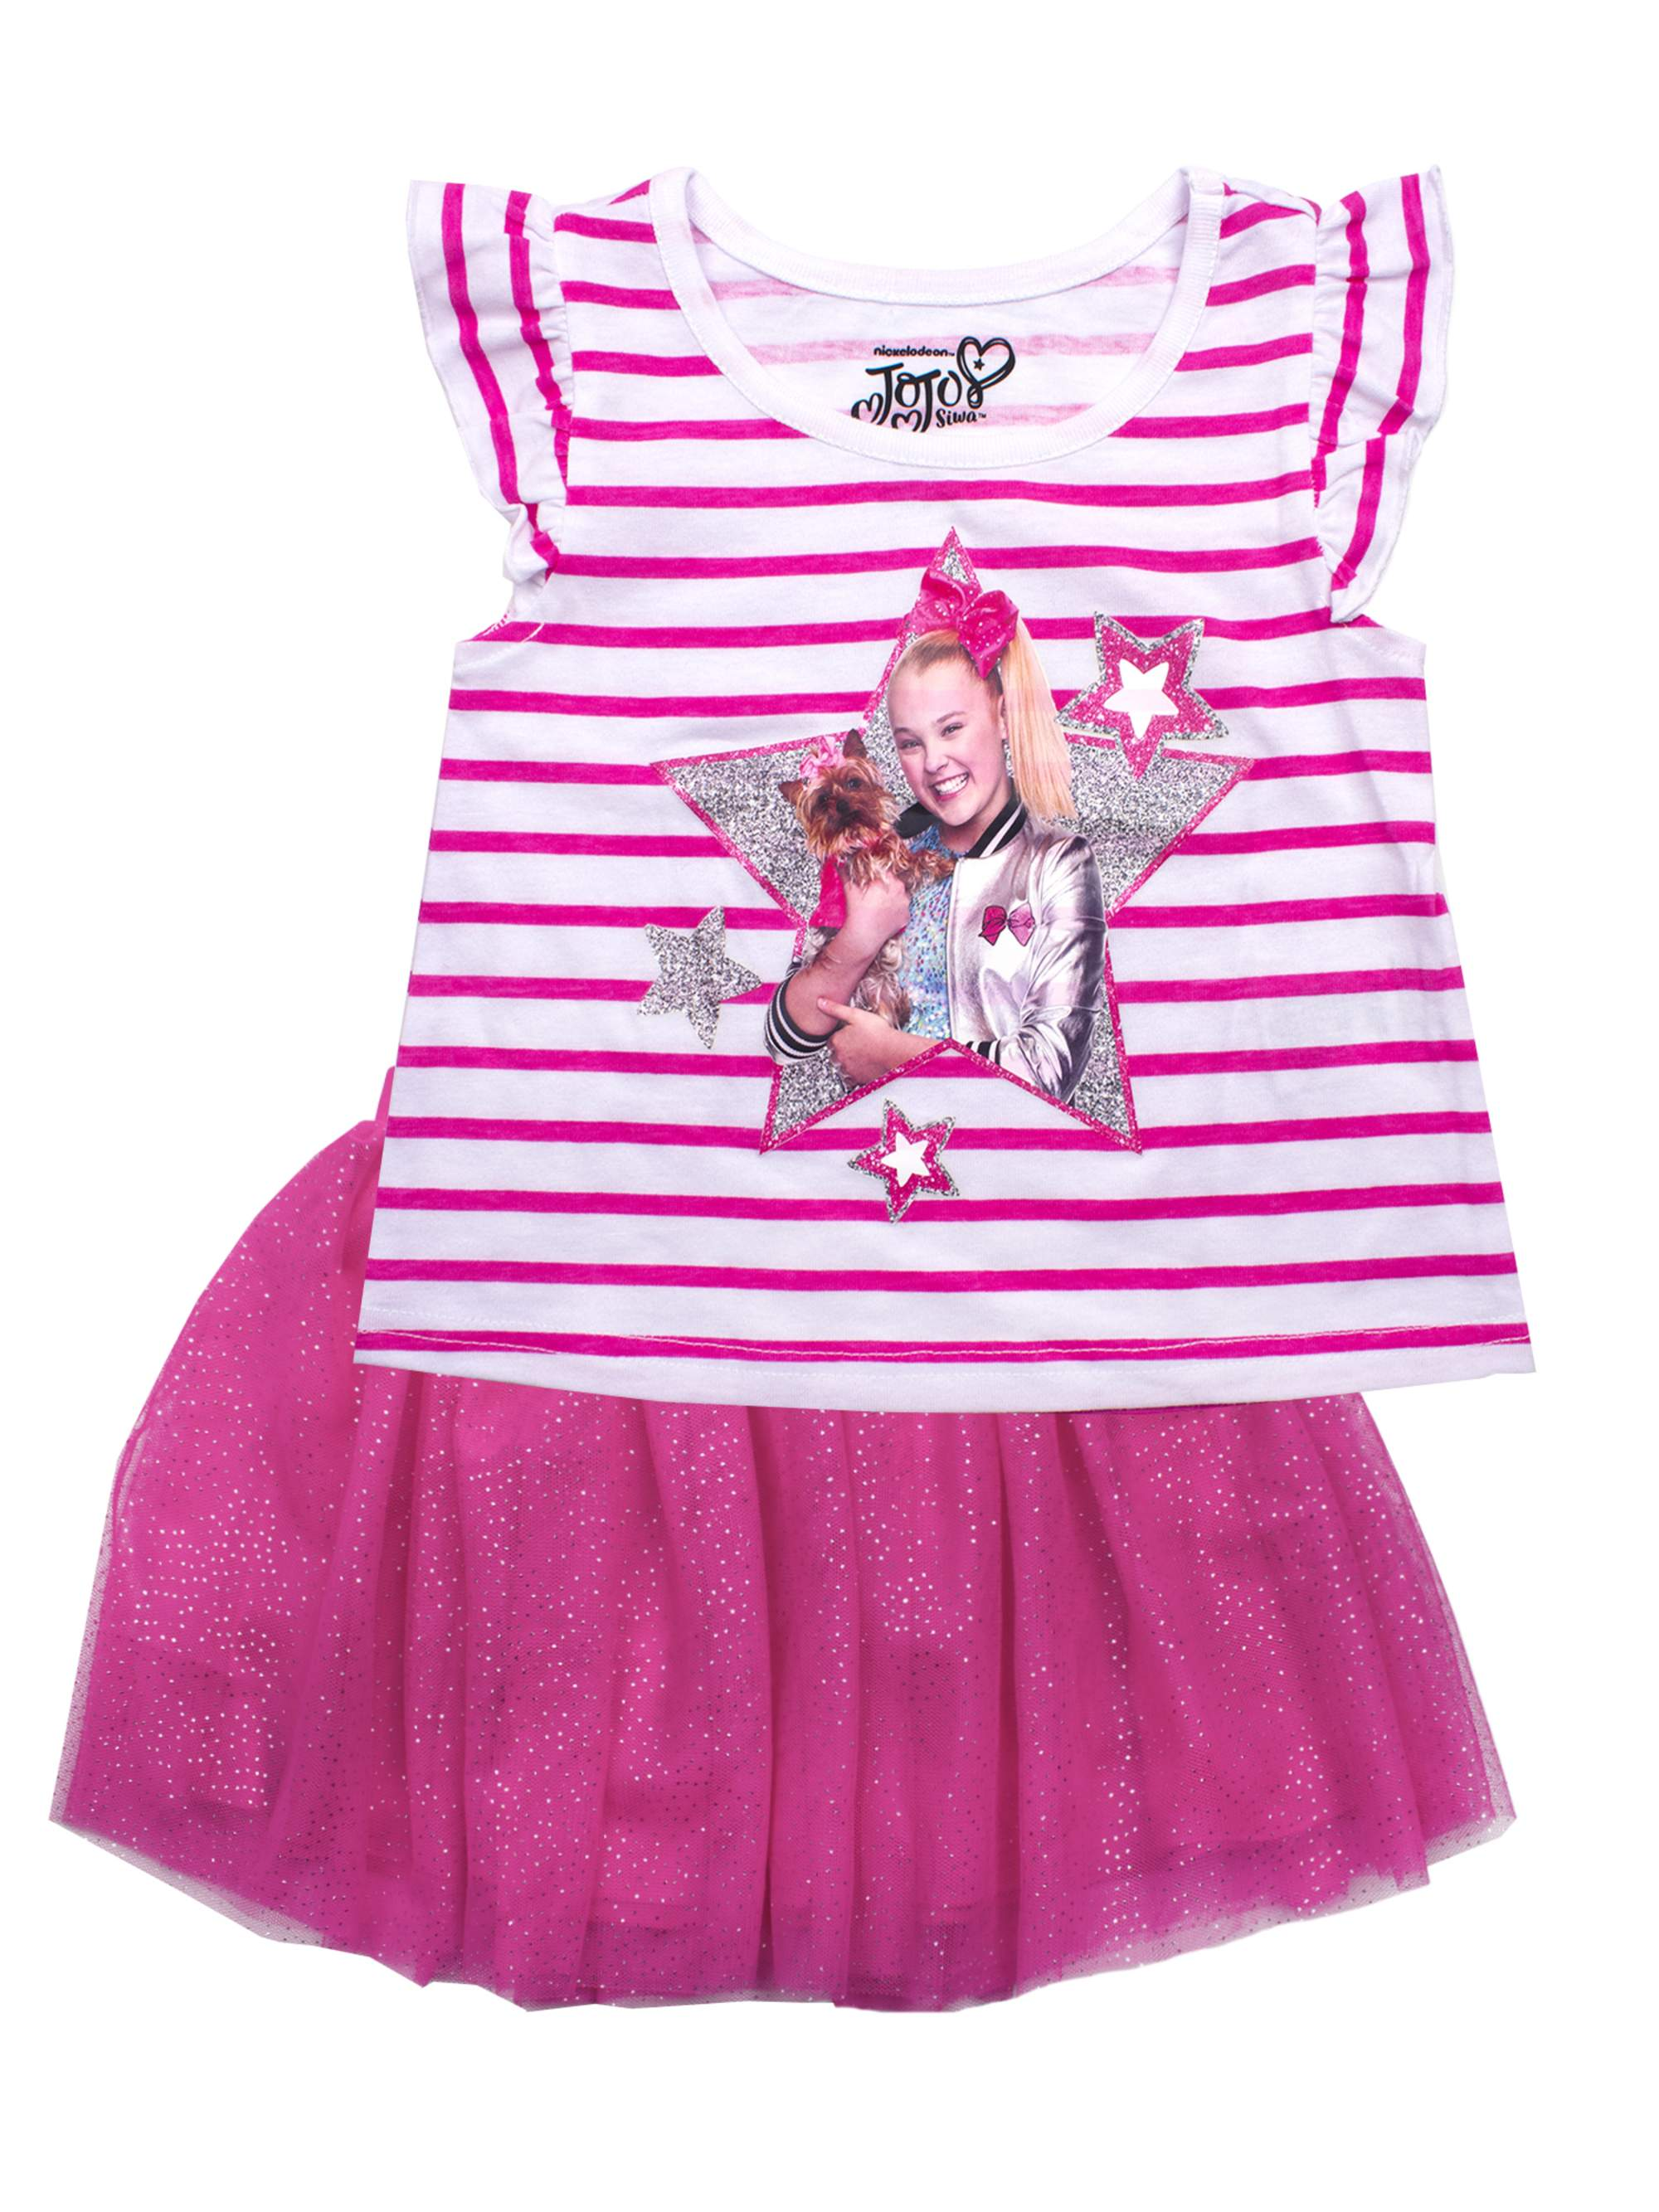 JoJo & Bow Bow Tee and Glitter Tutu Skirt, 2-Piece Outfit Set (Little Girls)